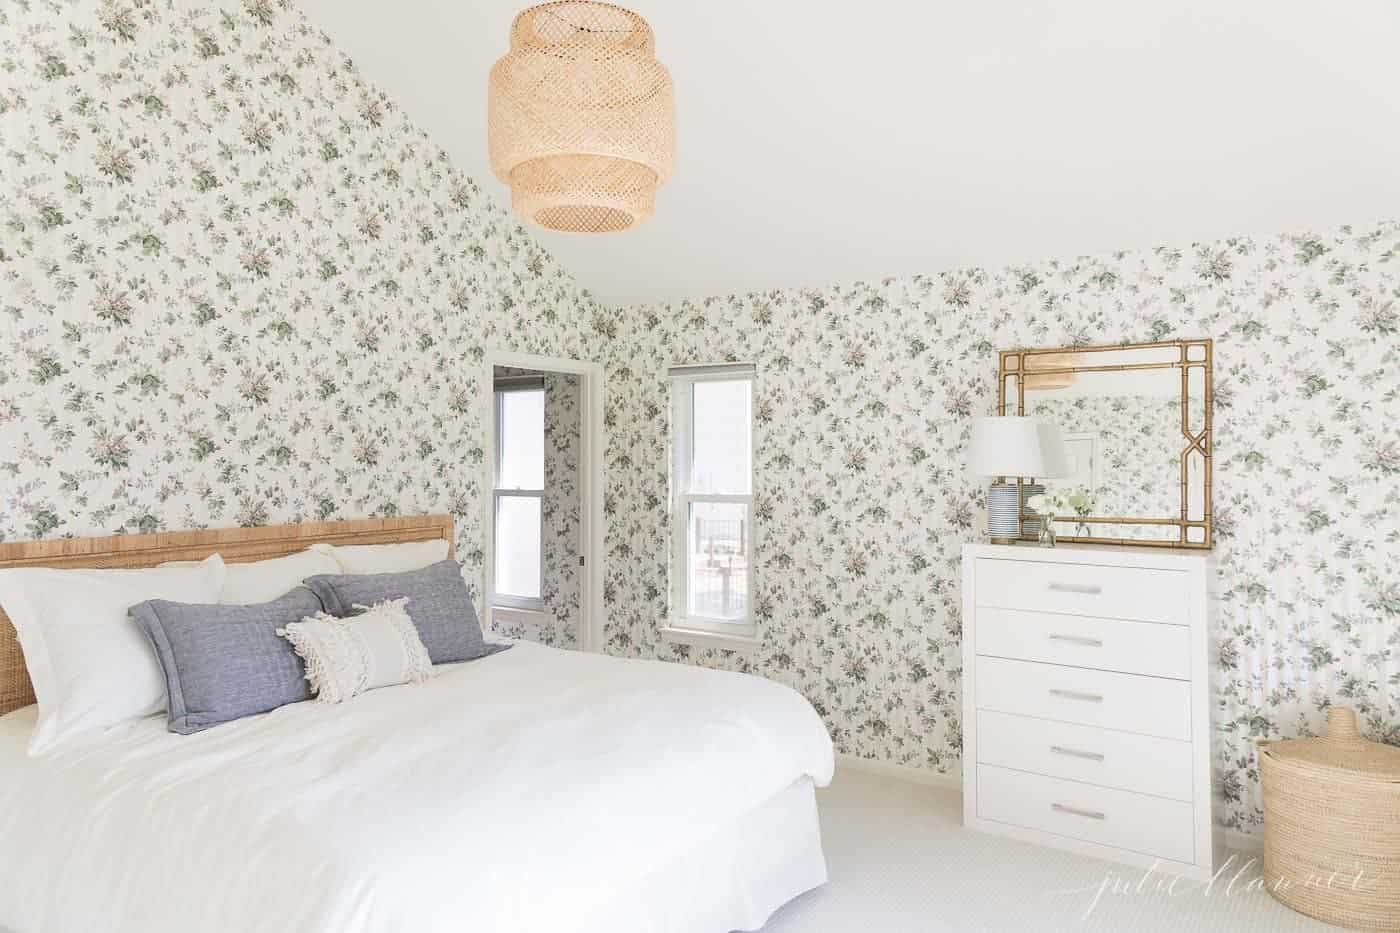 large woven light in a wallpapered bedroom with neutral beddding